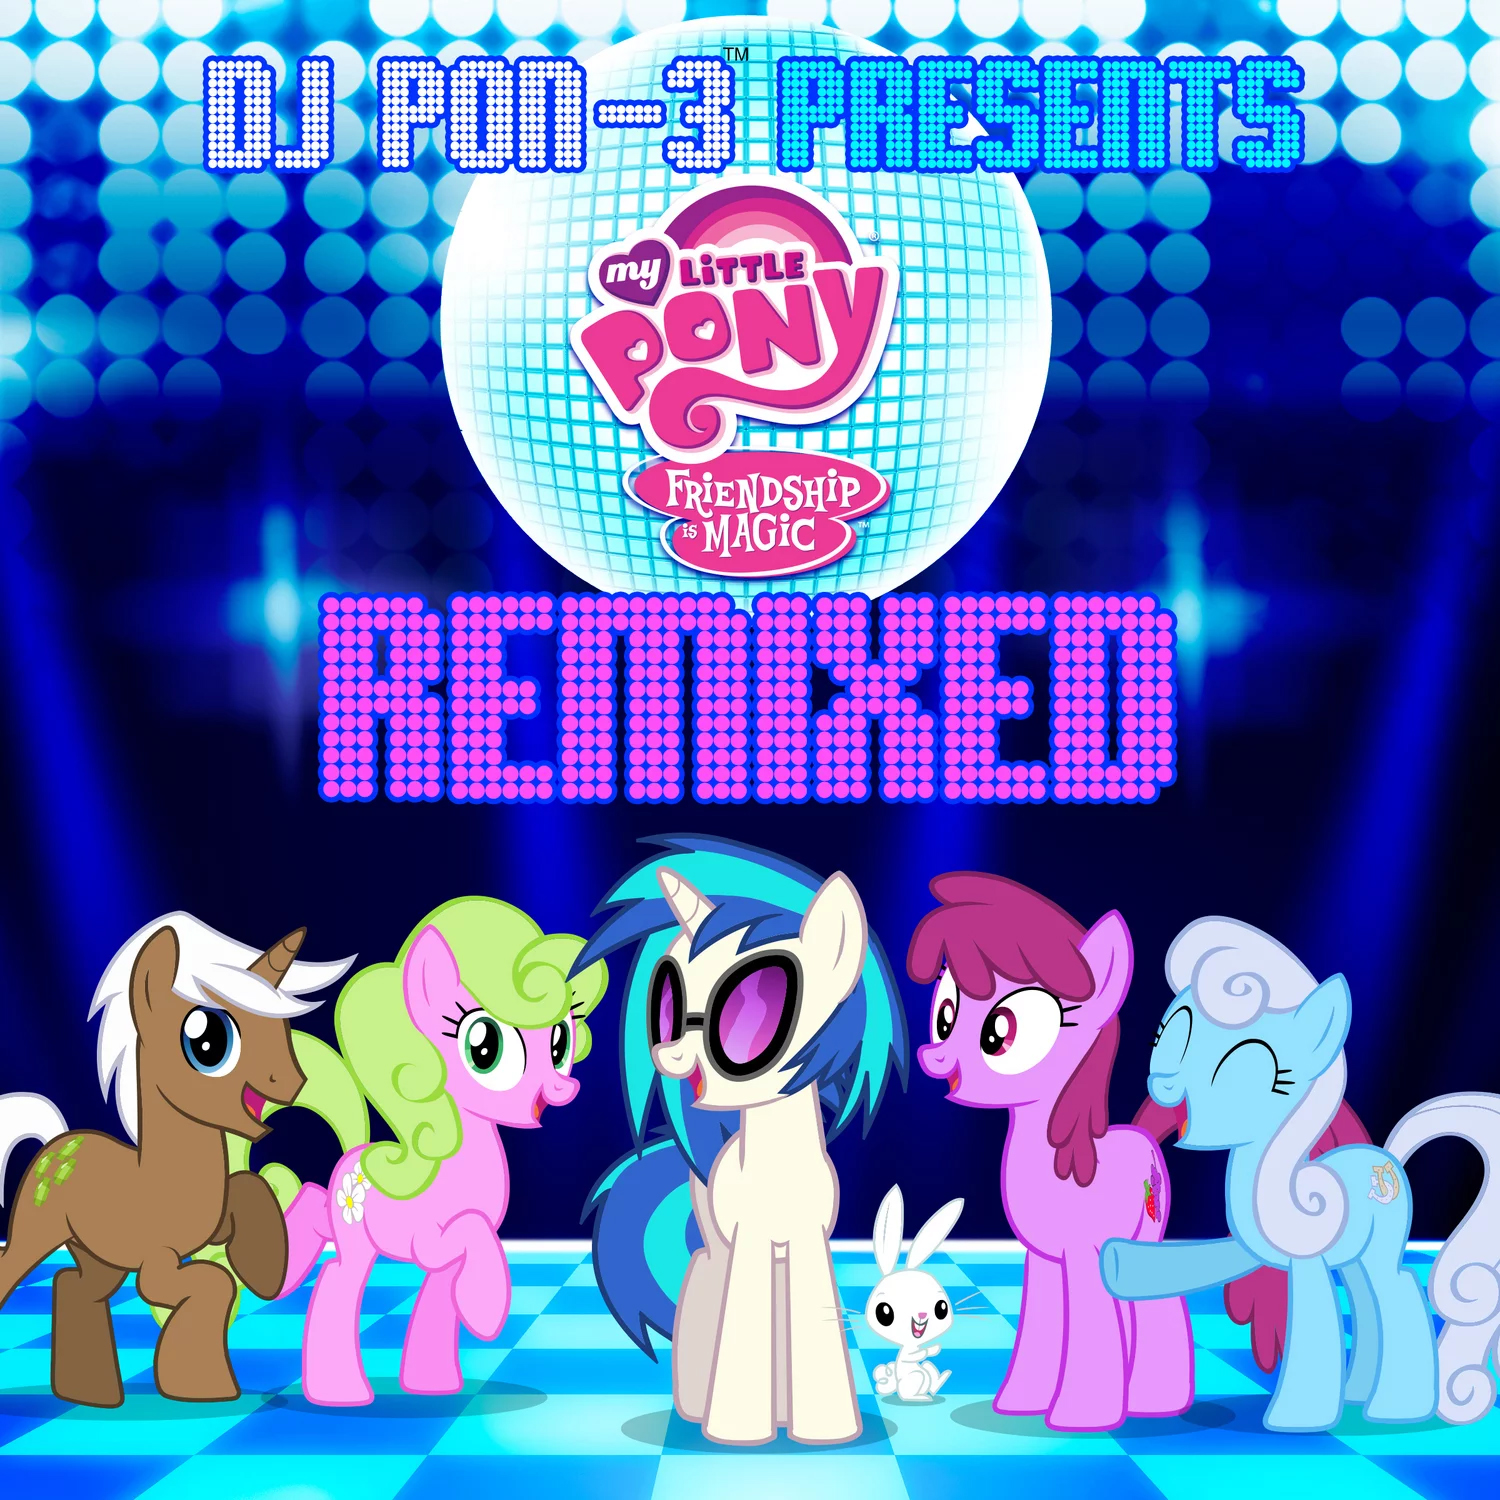 My Little Pony: Friendship is Magic Remixed